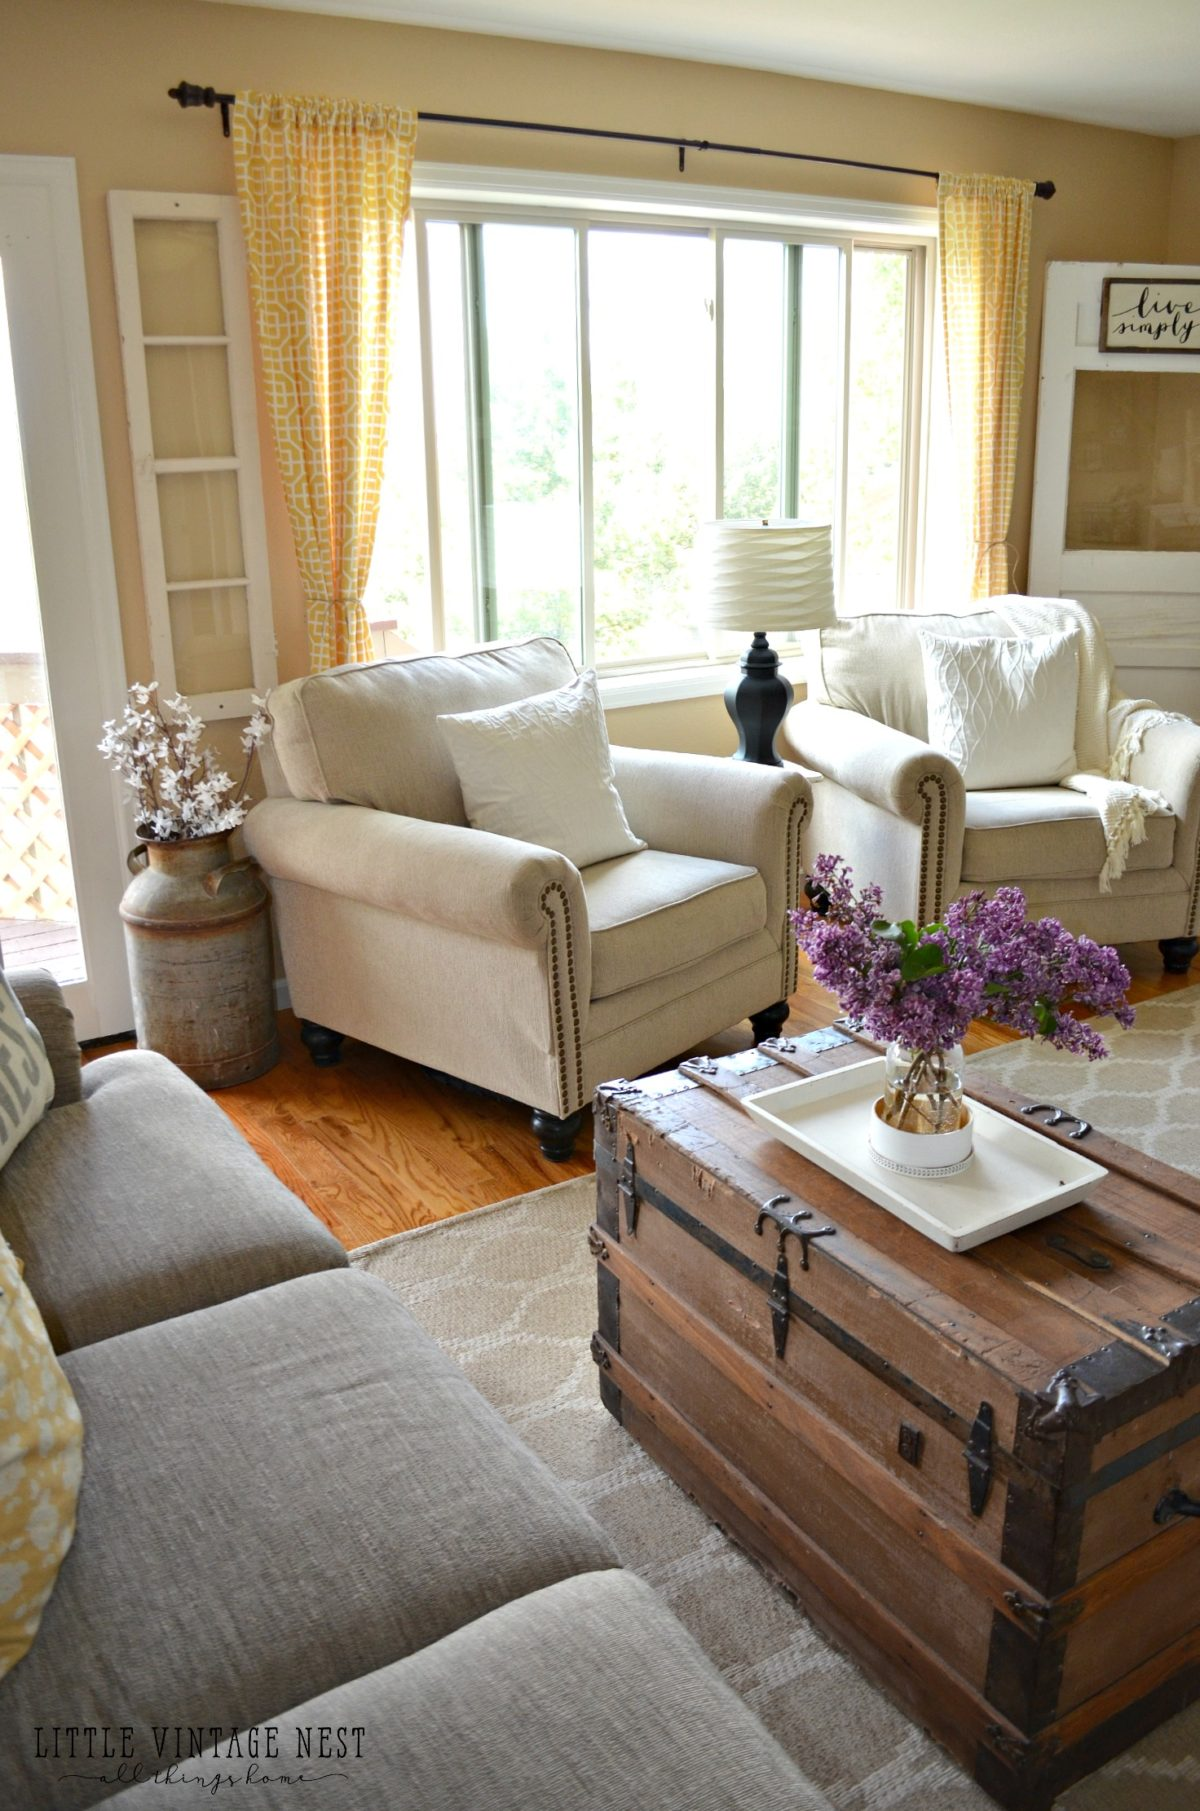 How i transitioned to farmhouse style little vintage nest for Old style living room ideas